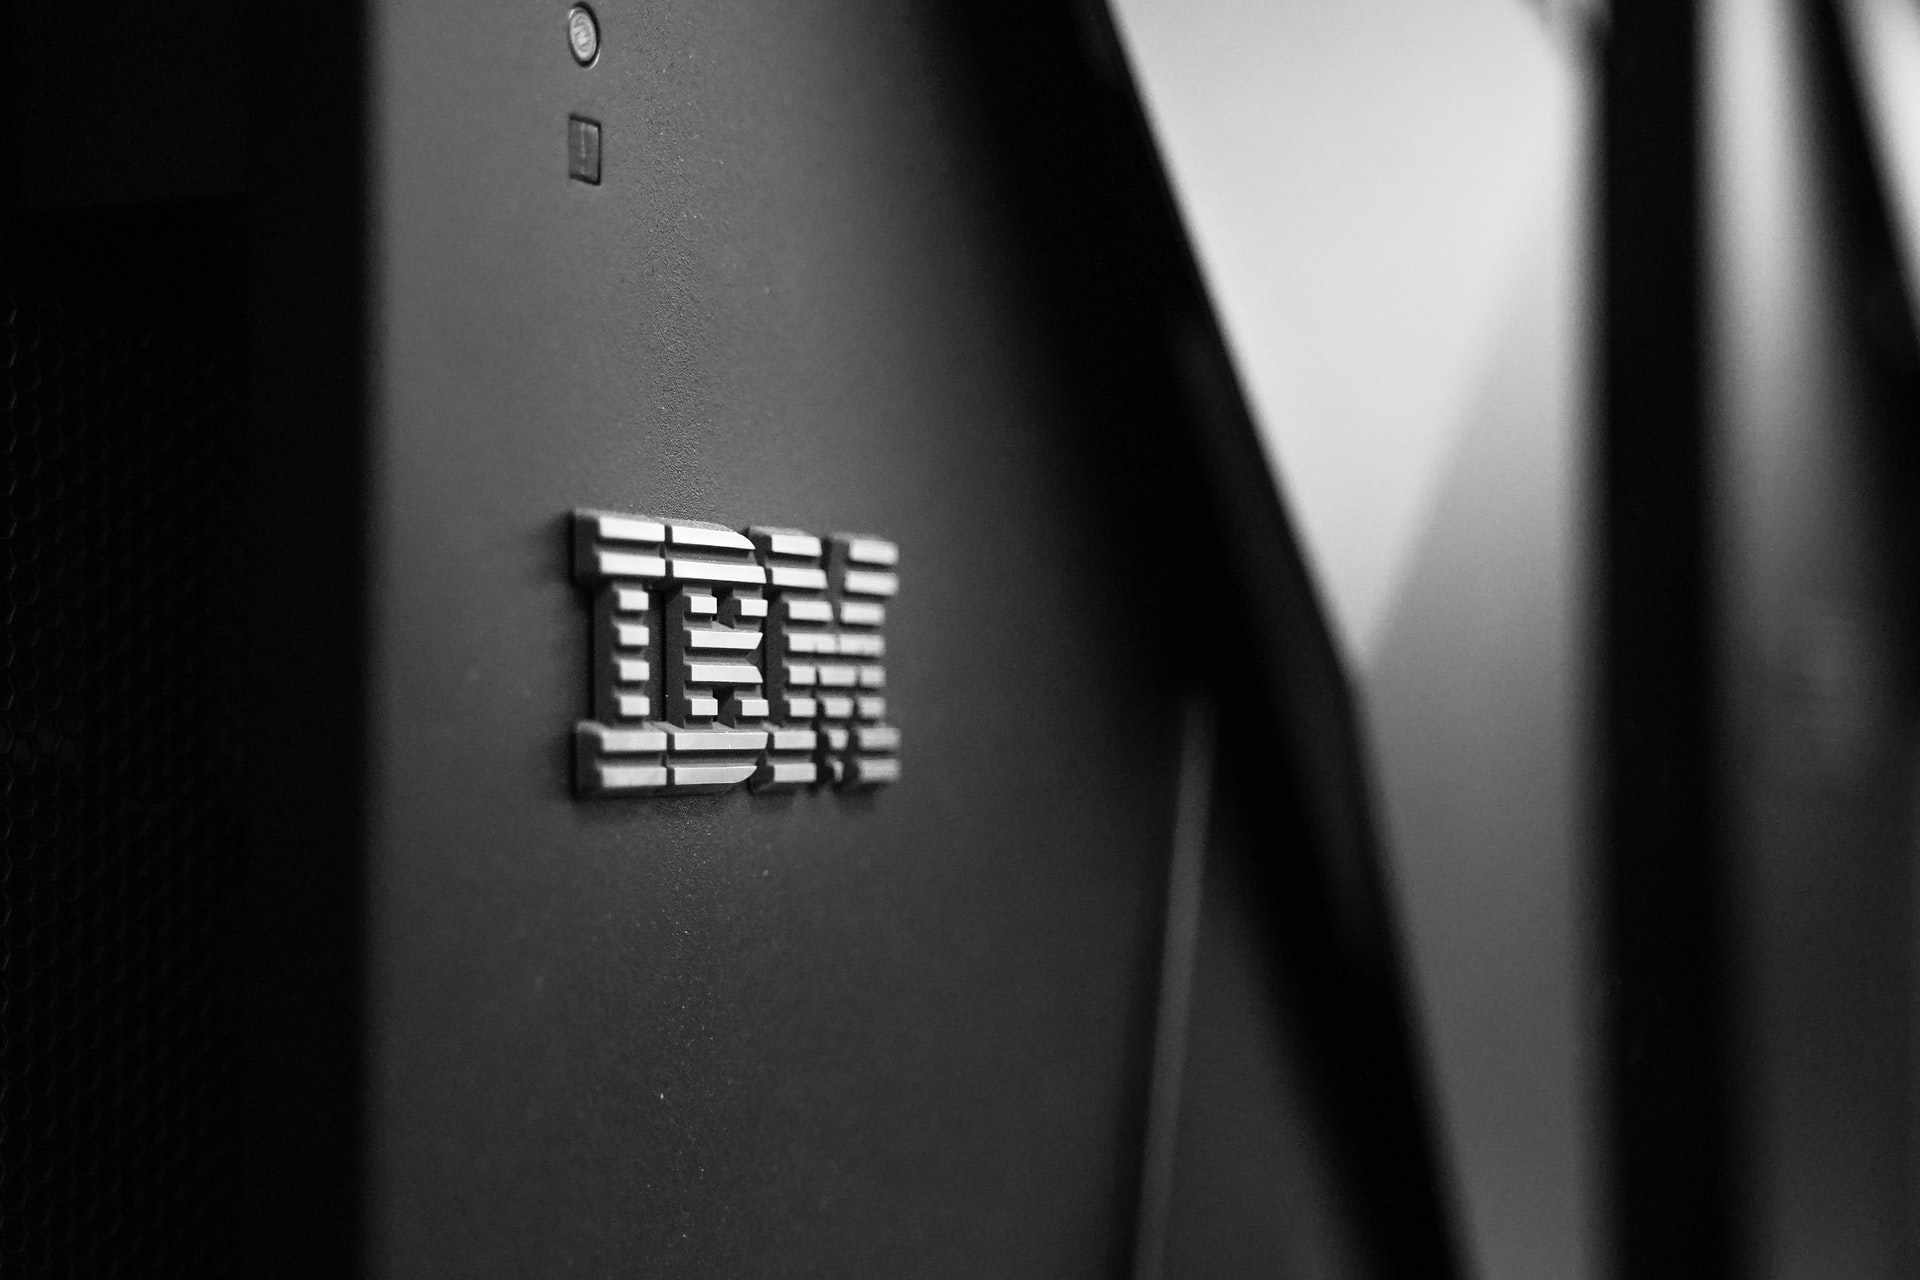 Tech Report Weekly: IBM results, Dell Technologies World, MPs seek gigabit broadband update